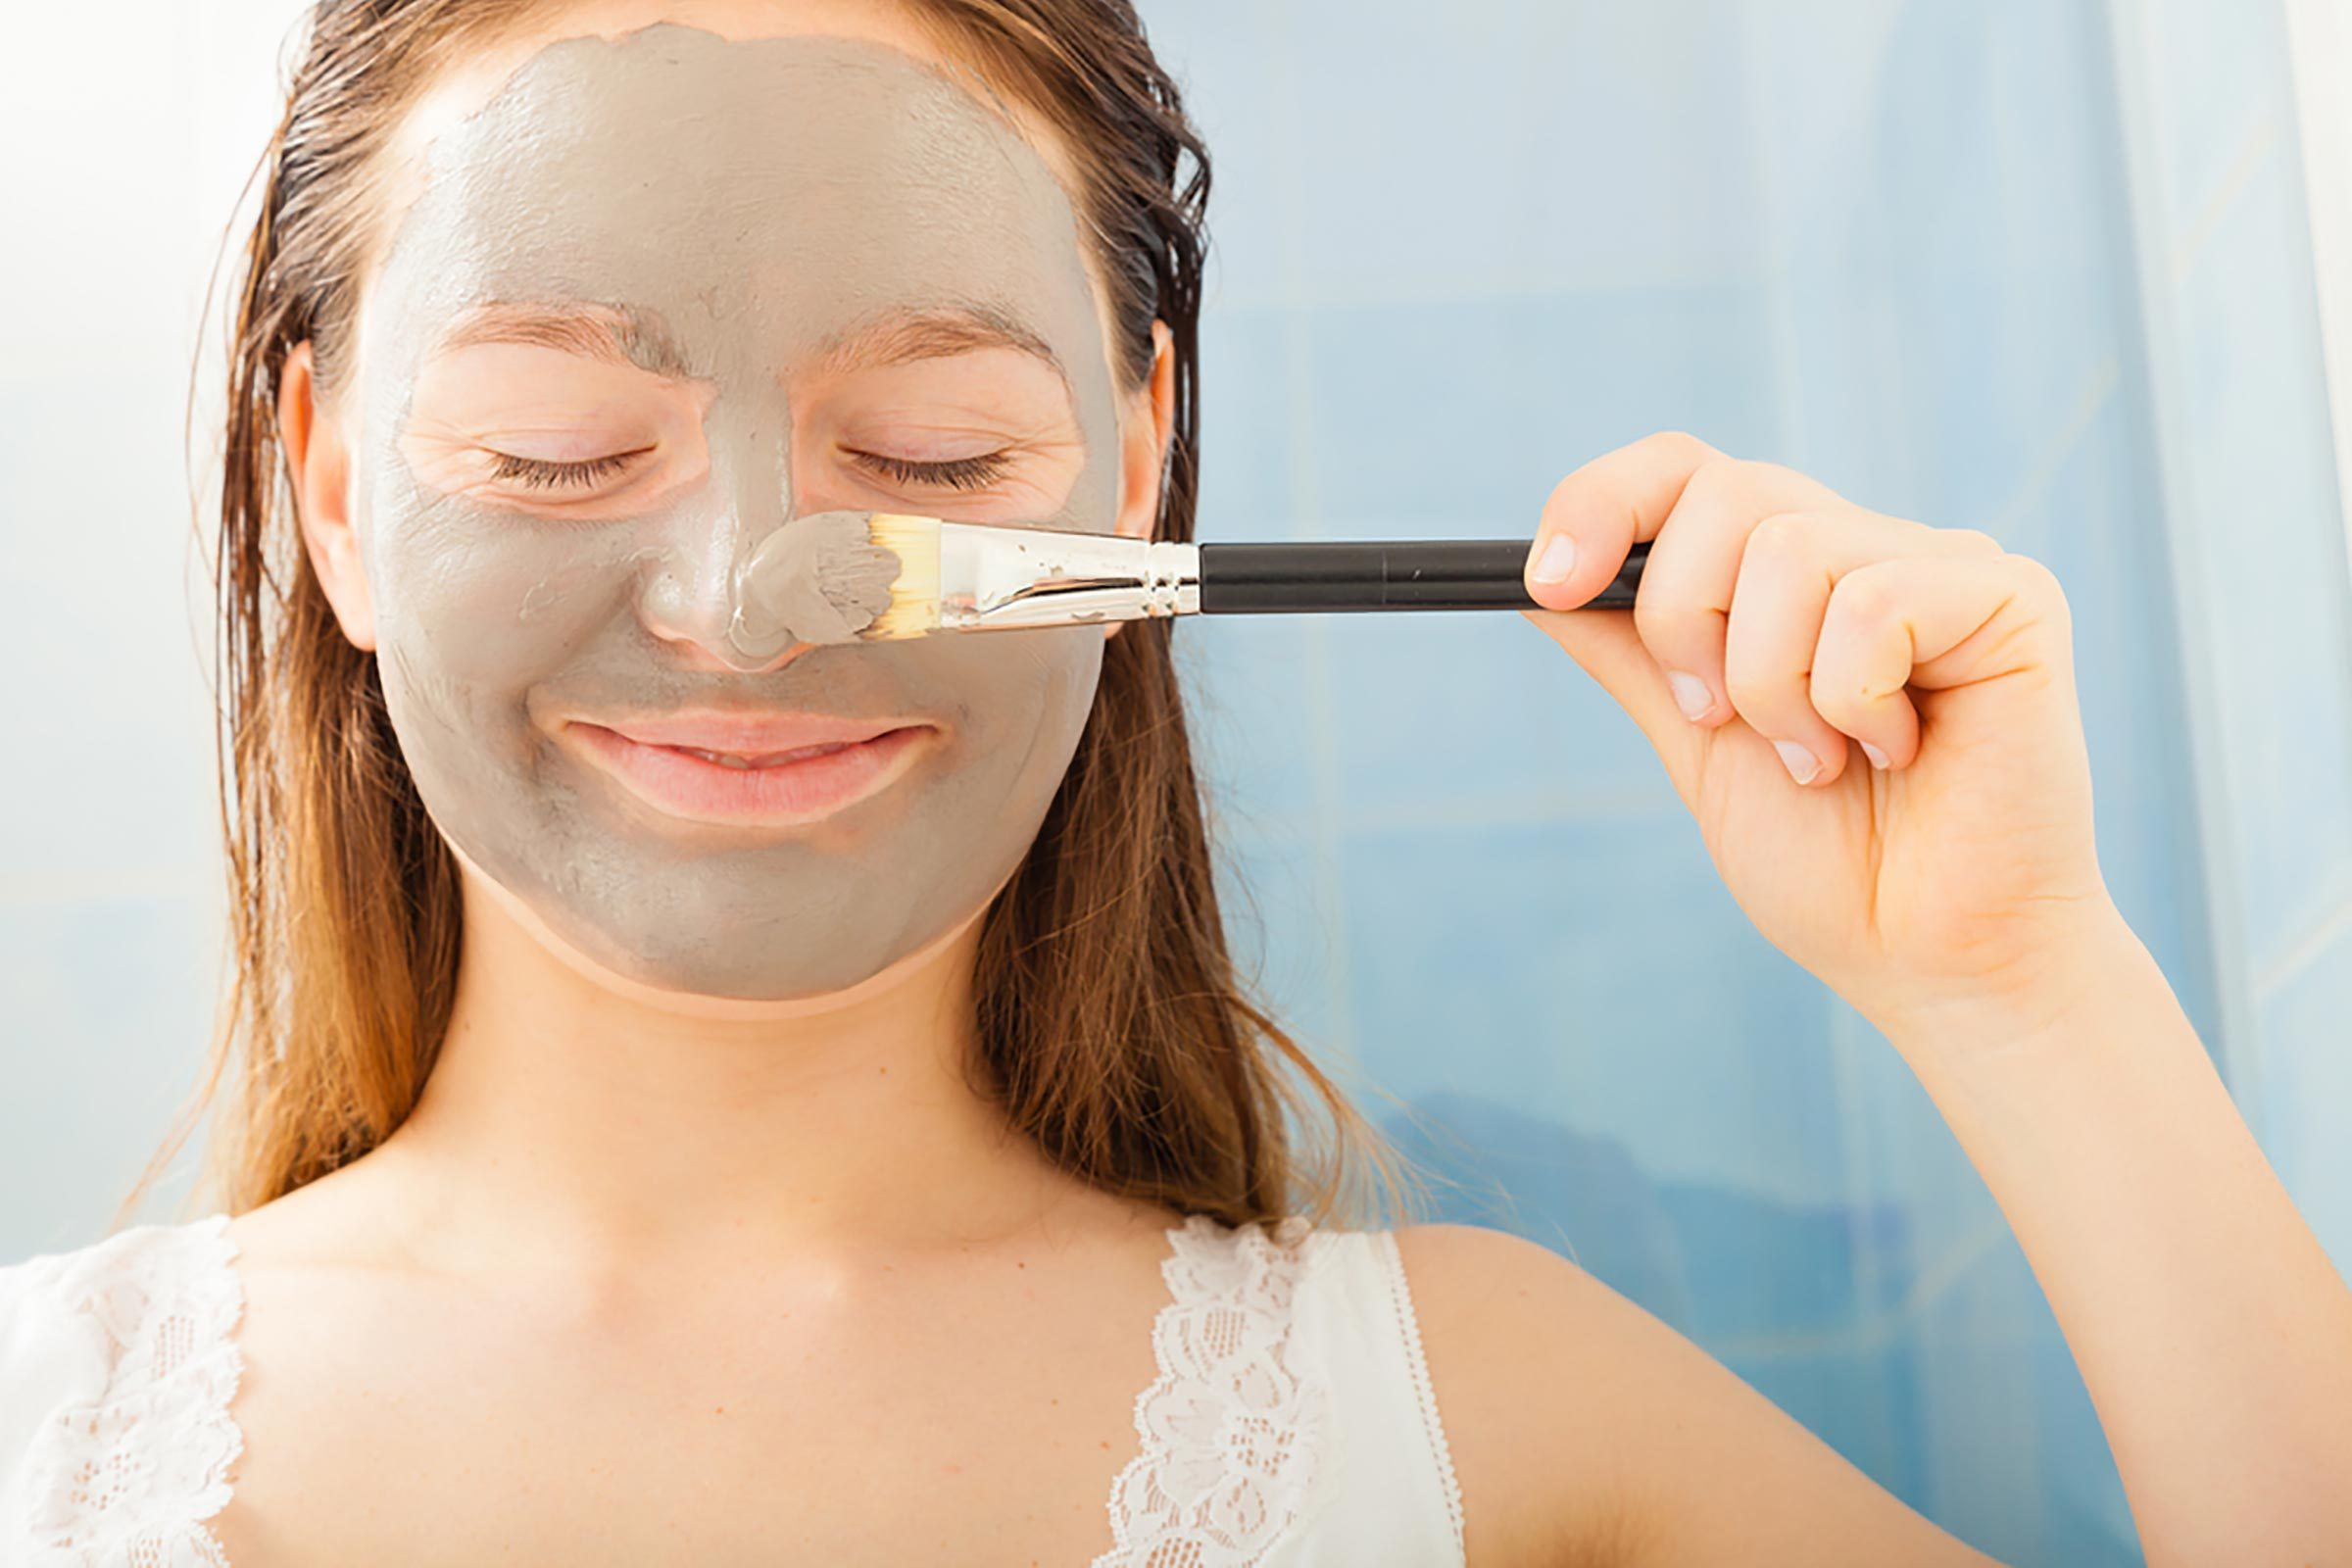 9 DIY Facial Treatments You Can Safely